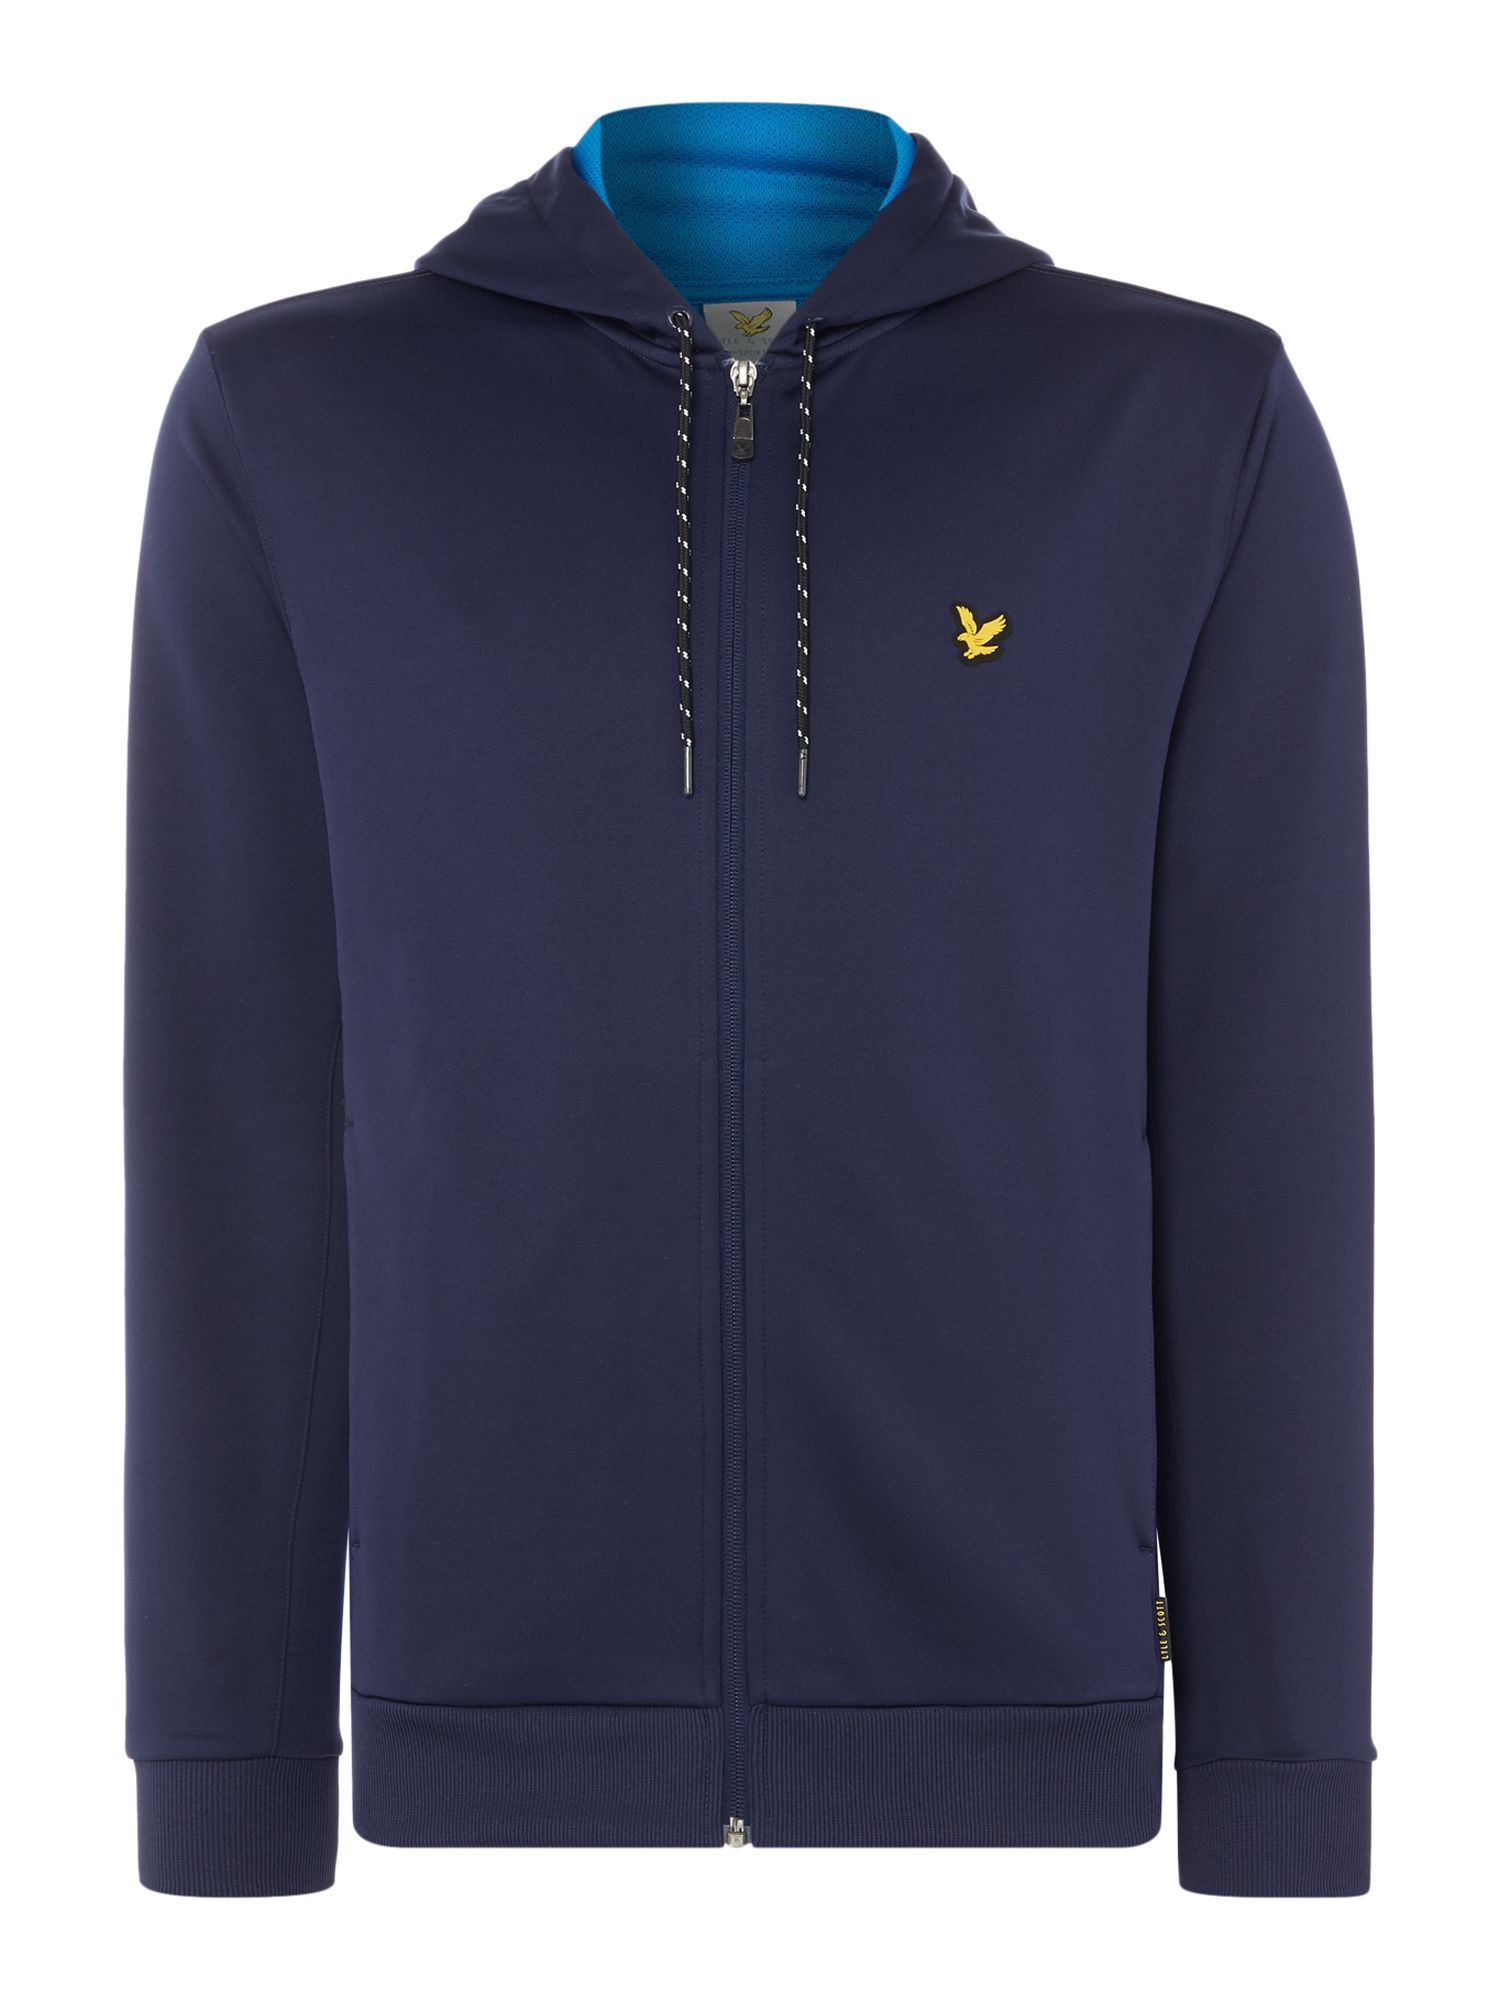 Lyle and Scott Men's Lyle and Scott Sports Hill fleece track hoodie, Navy